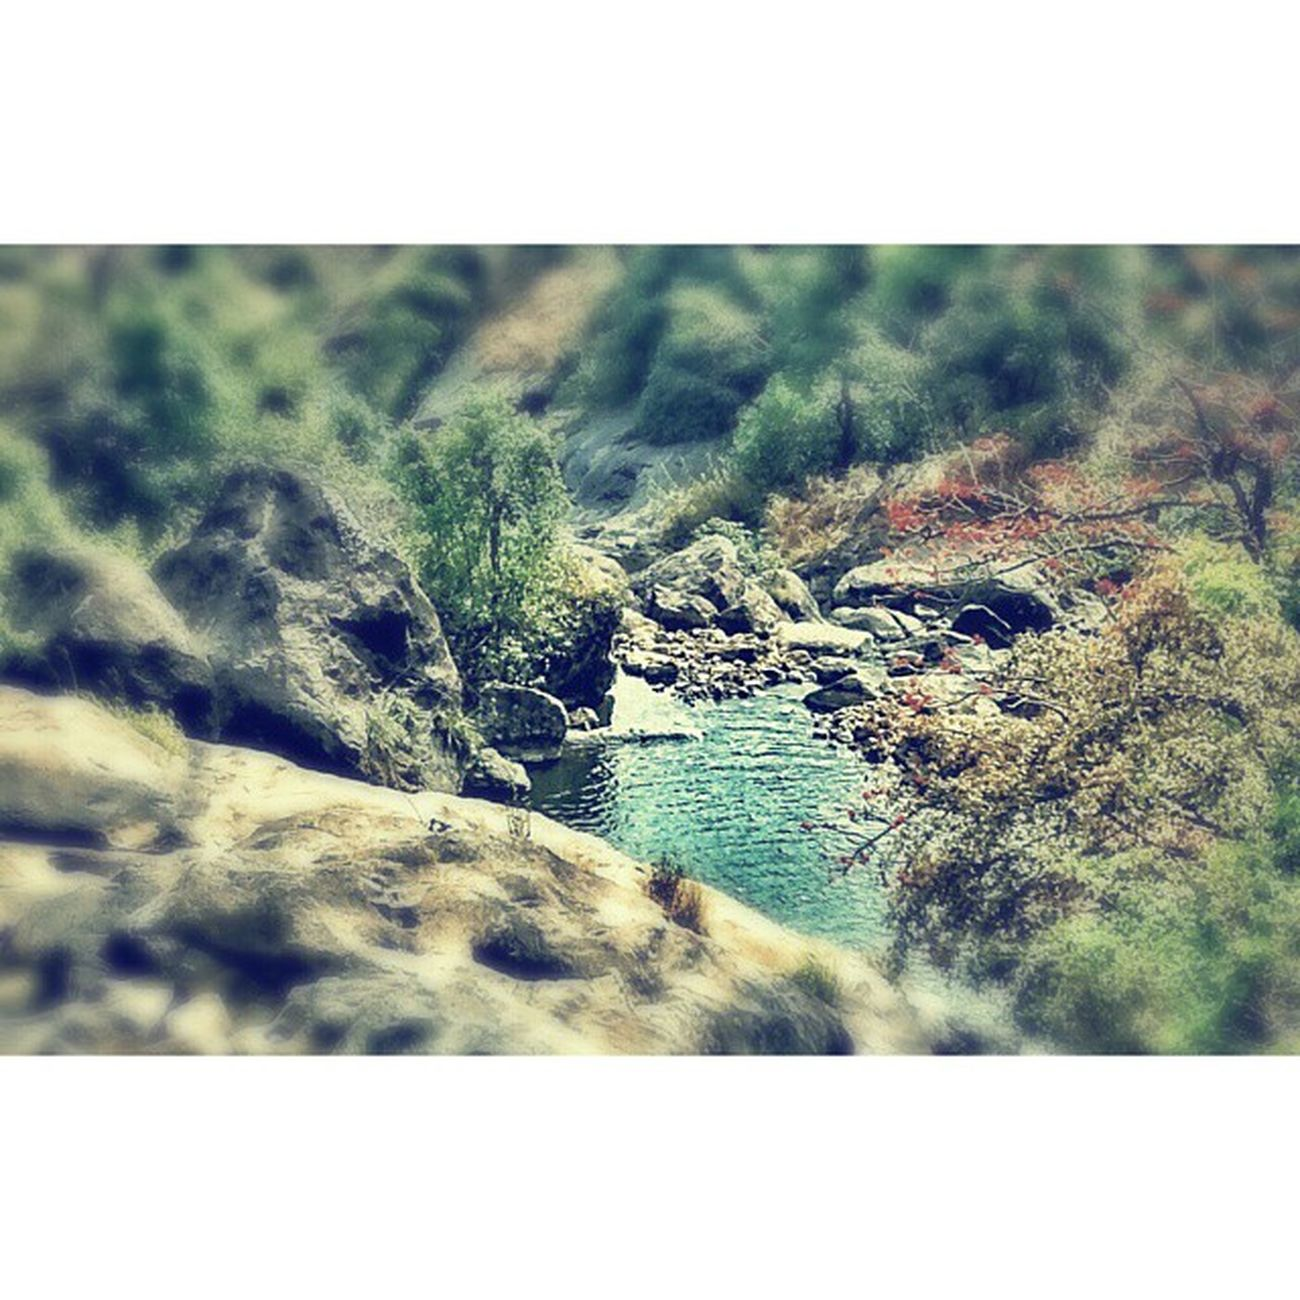 Tilt shift stuff Croppedimage Realphoto Motog Munnar Waterfall Likezen Zengarden Tiltshift Pond Nature Gulmohar Rocks Forest Pristine HD Granular